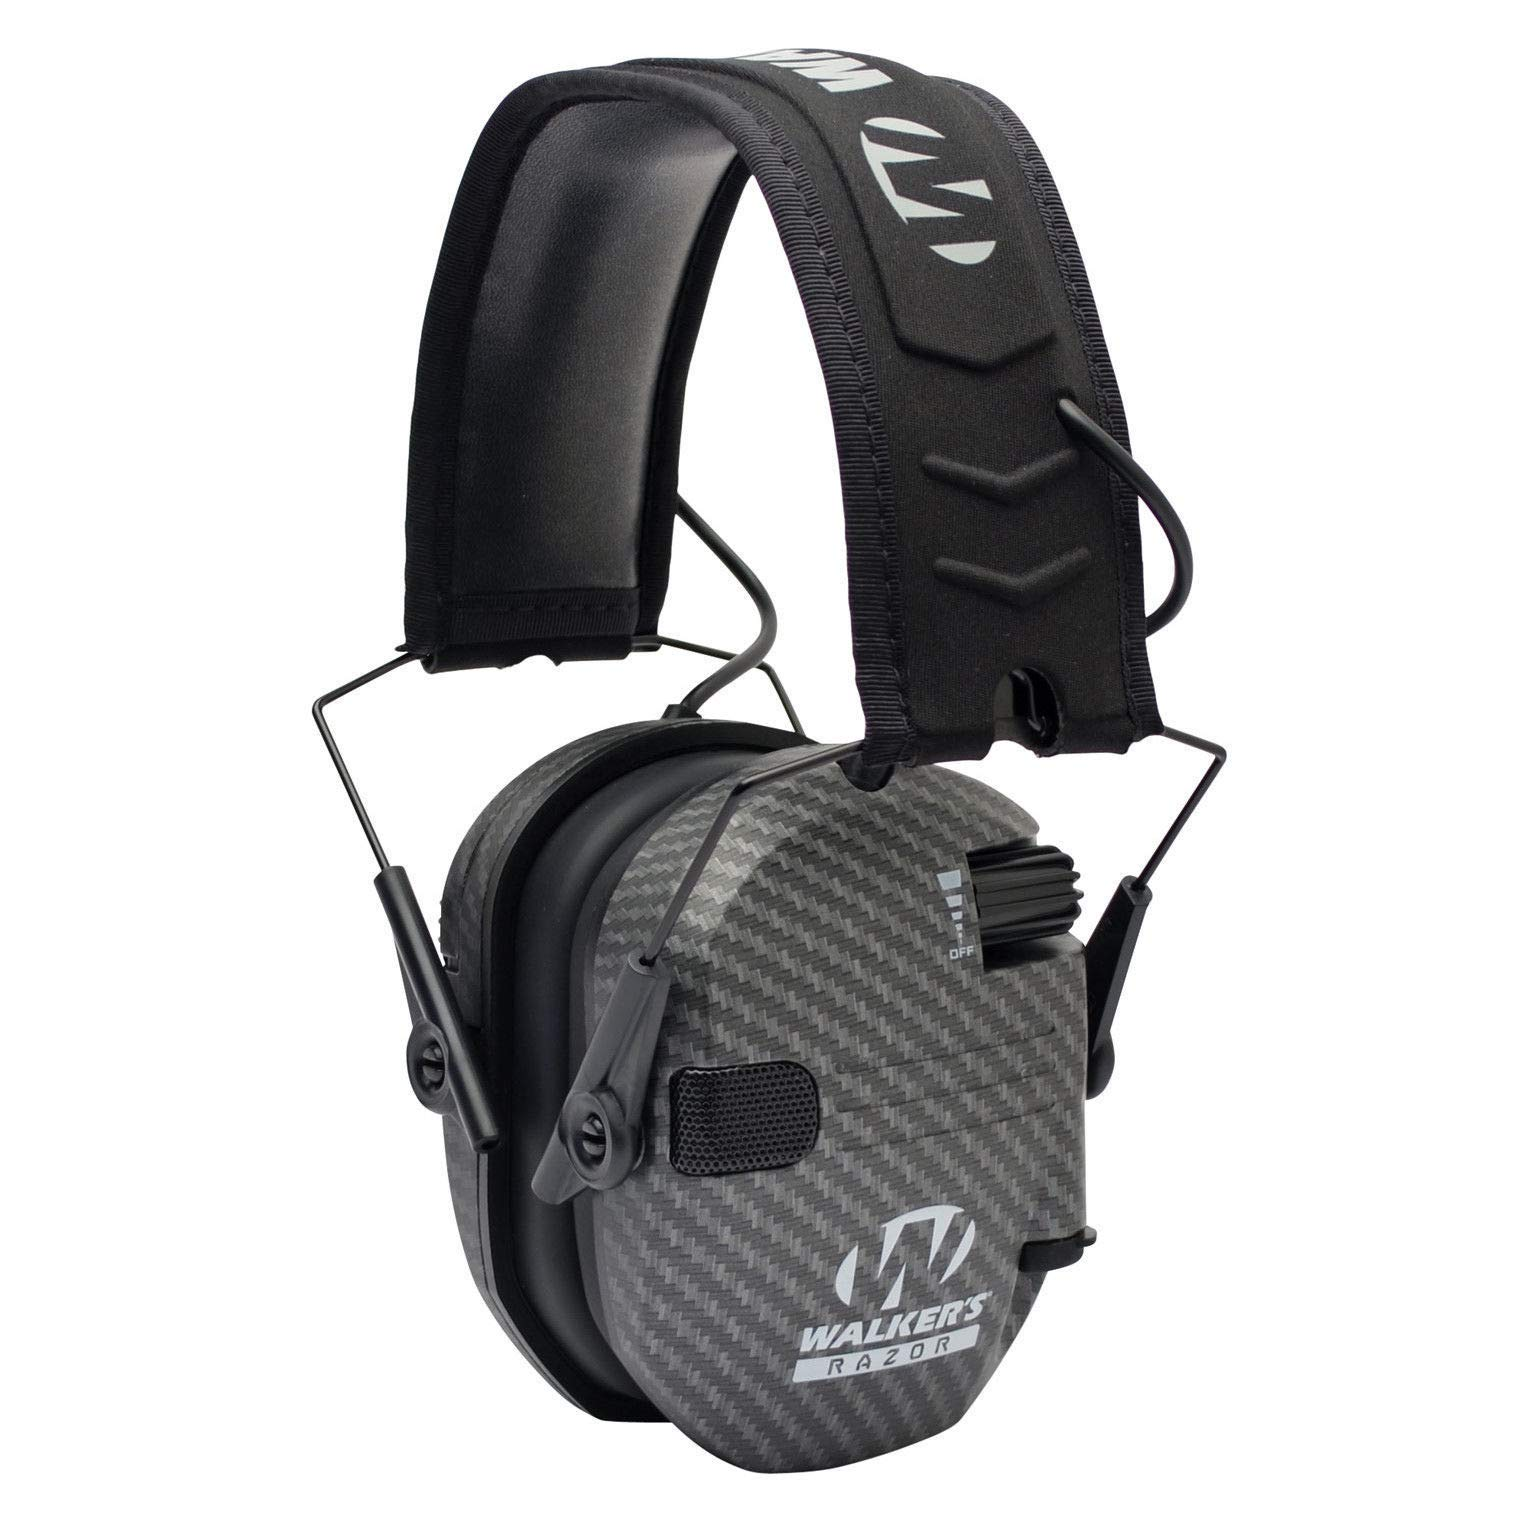 Walkers Razor Slim Electronic Hearing Protection Muffs with Sound Amplification and Suppression and Shooting Glasses Kit, Carbon by Walkers (Image #4)